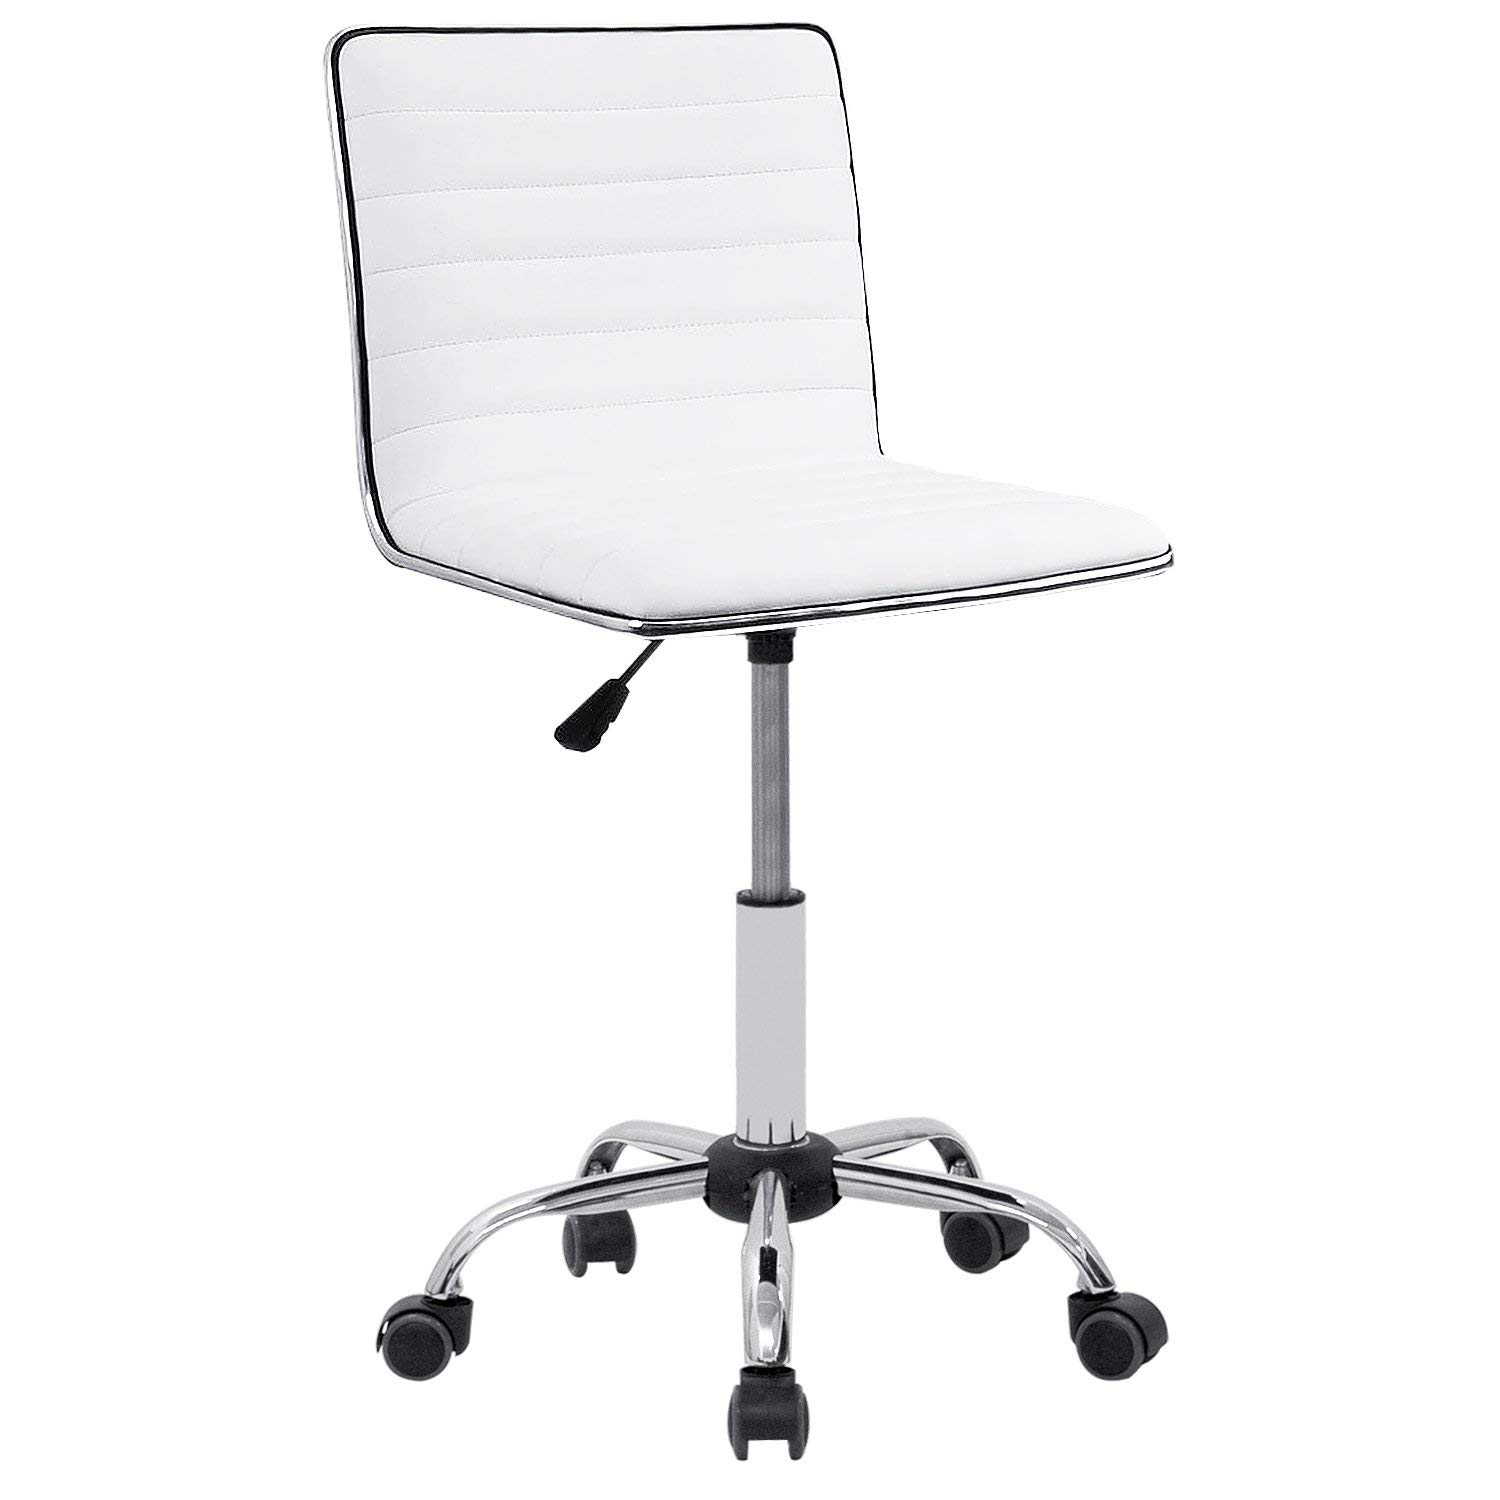 Cheap White Swivel Desk Chair Find White Swivel Desk Chair